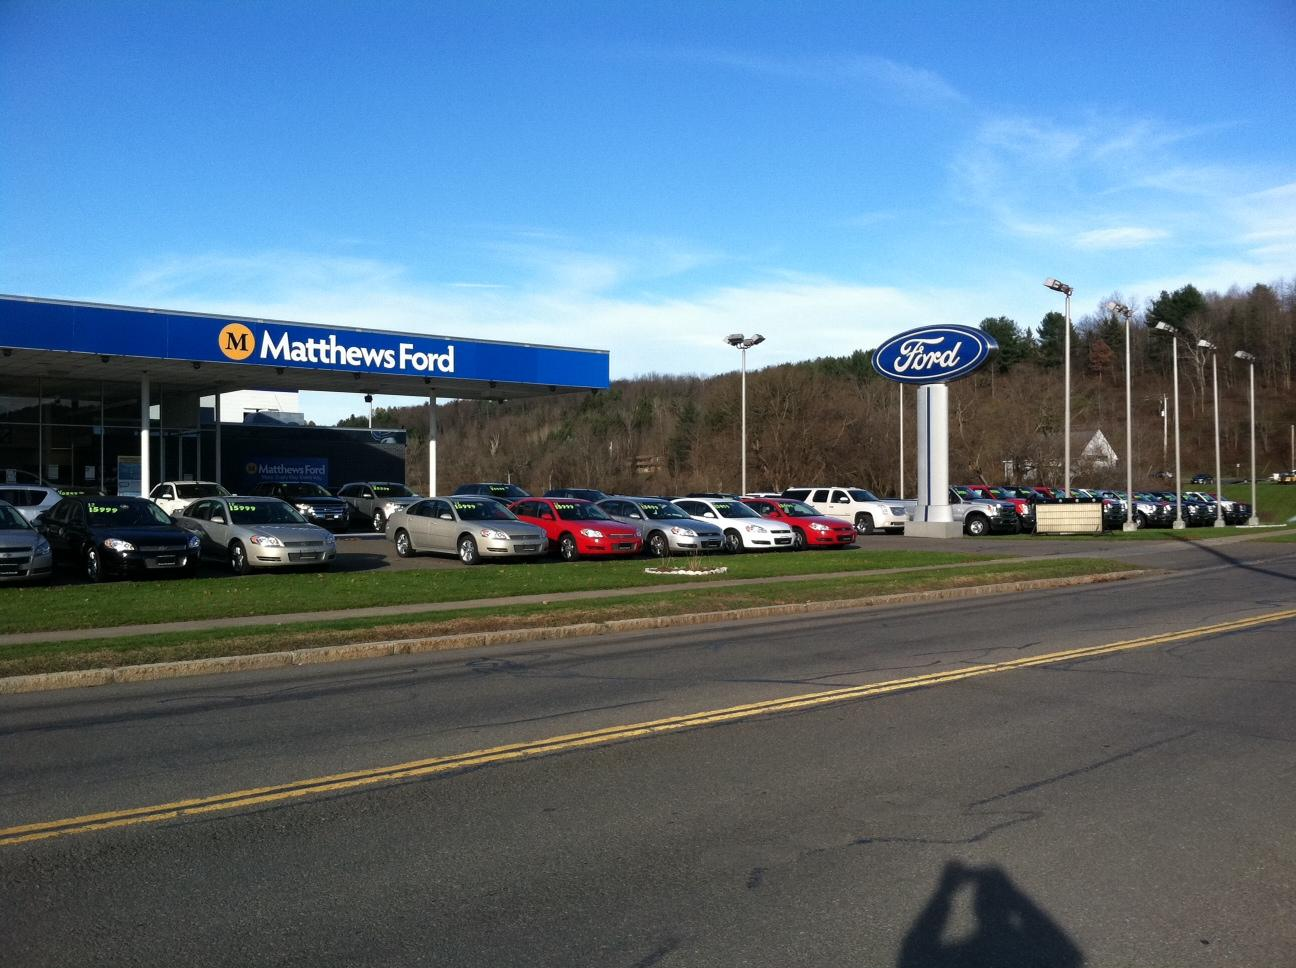 Matthews Planet Preowned >> Matthews Ford Planet PreOwned in Norwich, NY 13815 - ChamberofCommerce.com